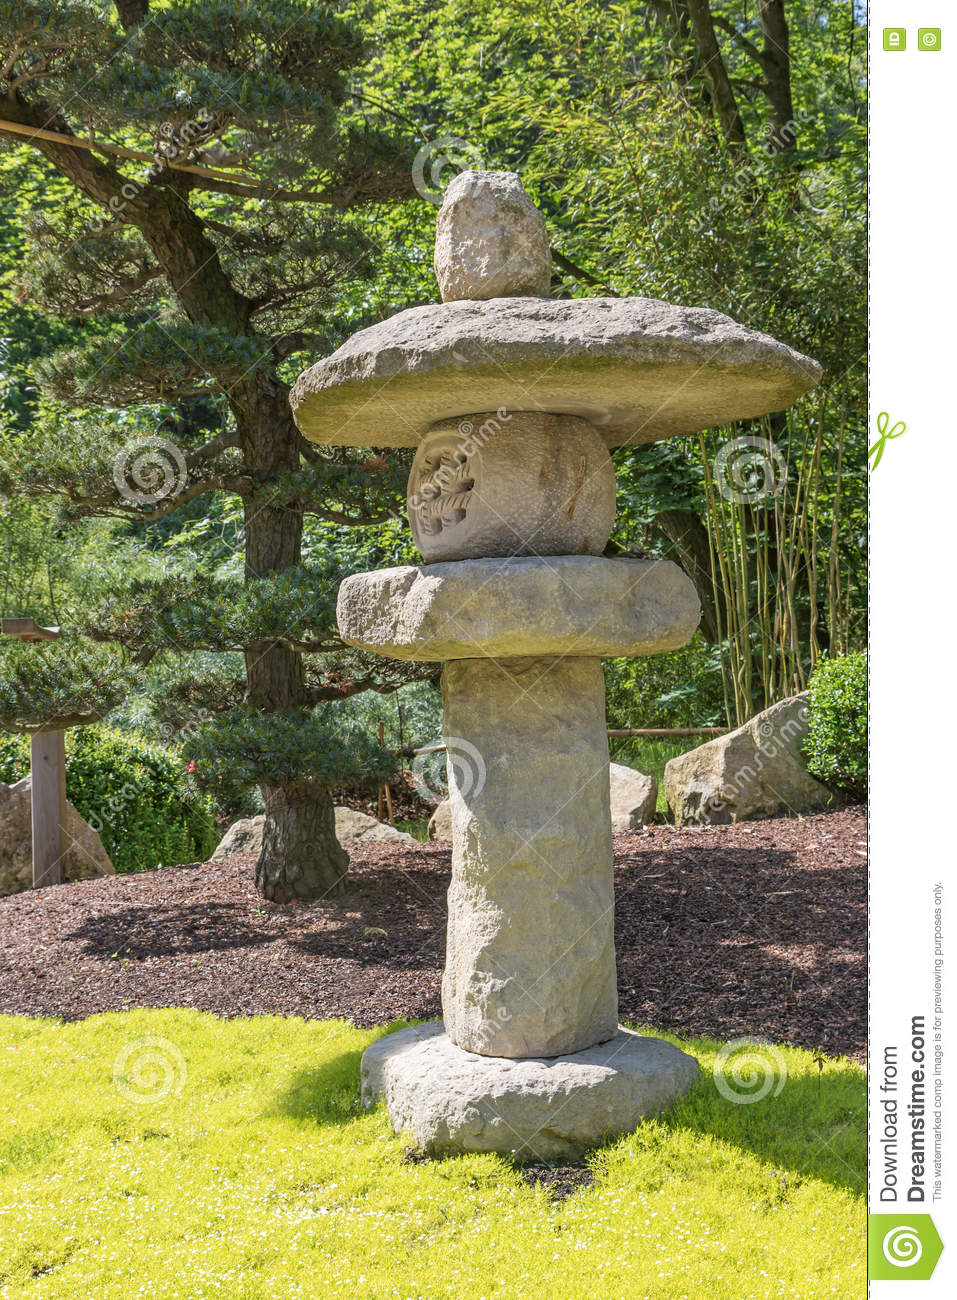 Japanese Stone Lamp Outdoors Stock Image - Image: 73121417 for Stone Lamp Post  58cpg